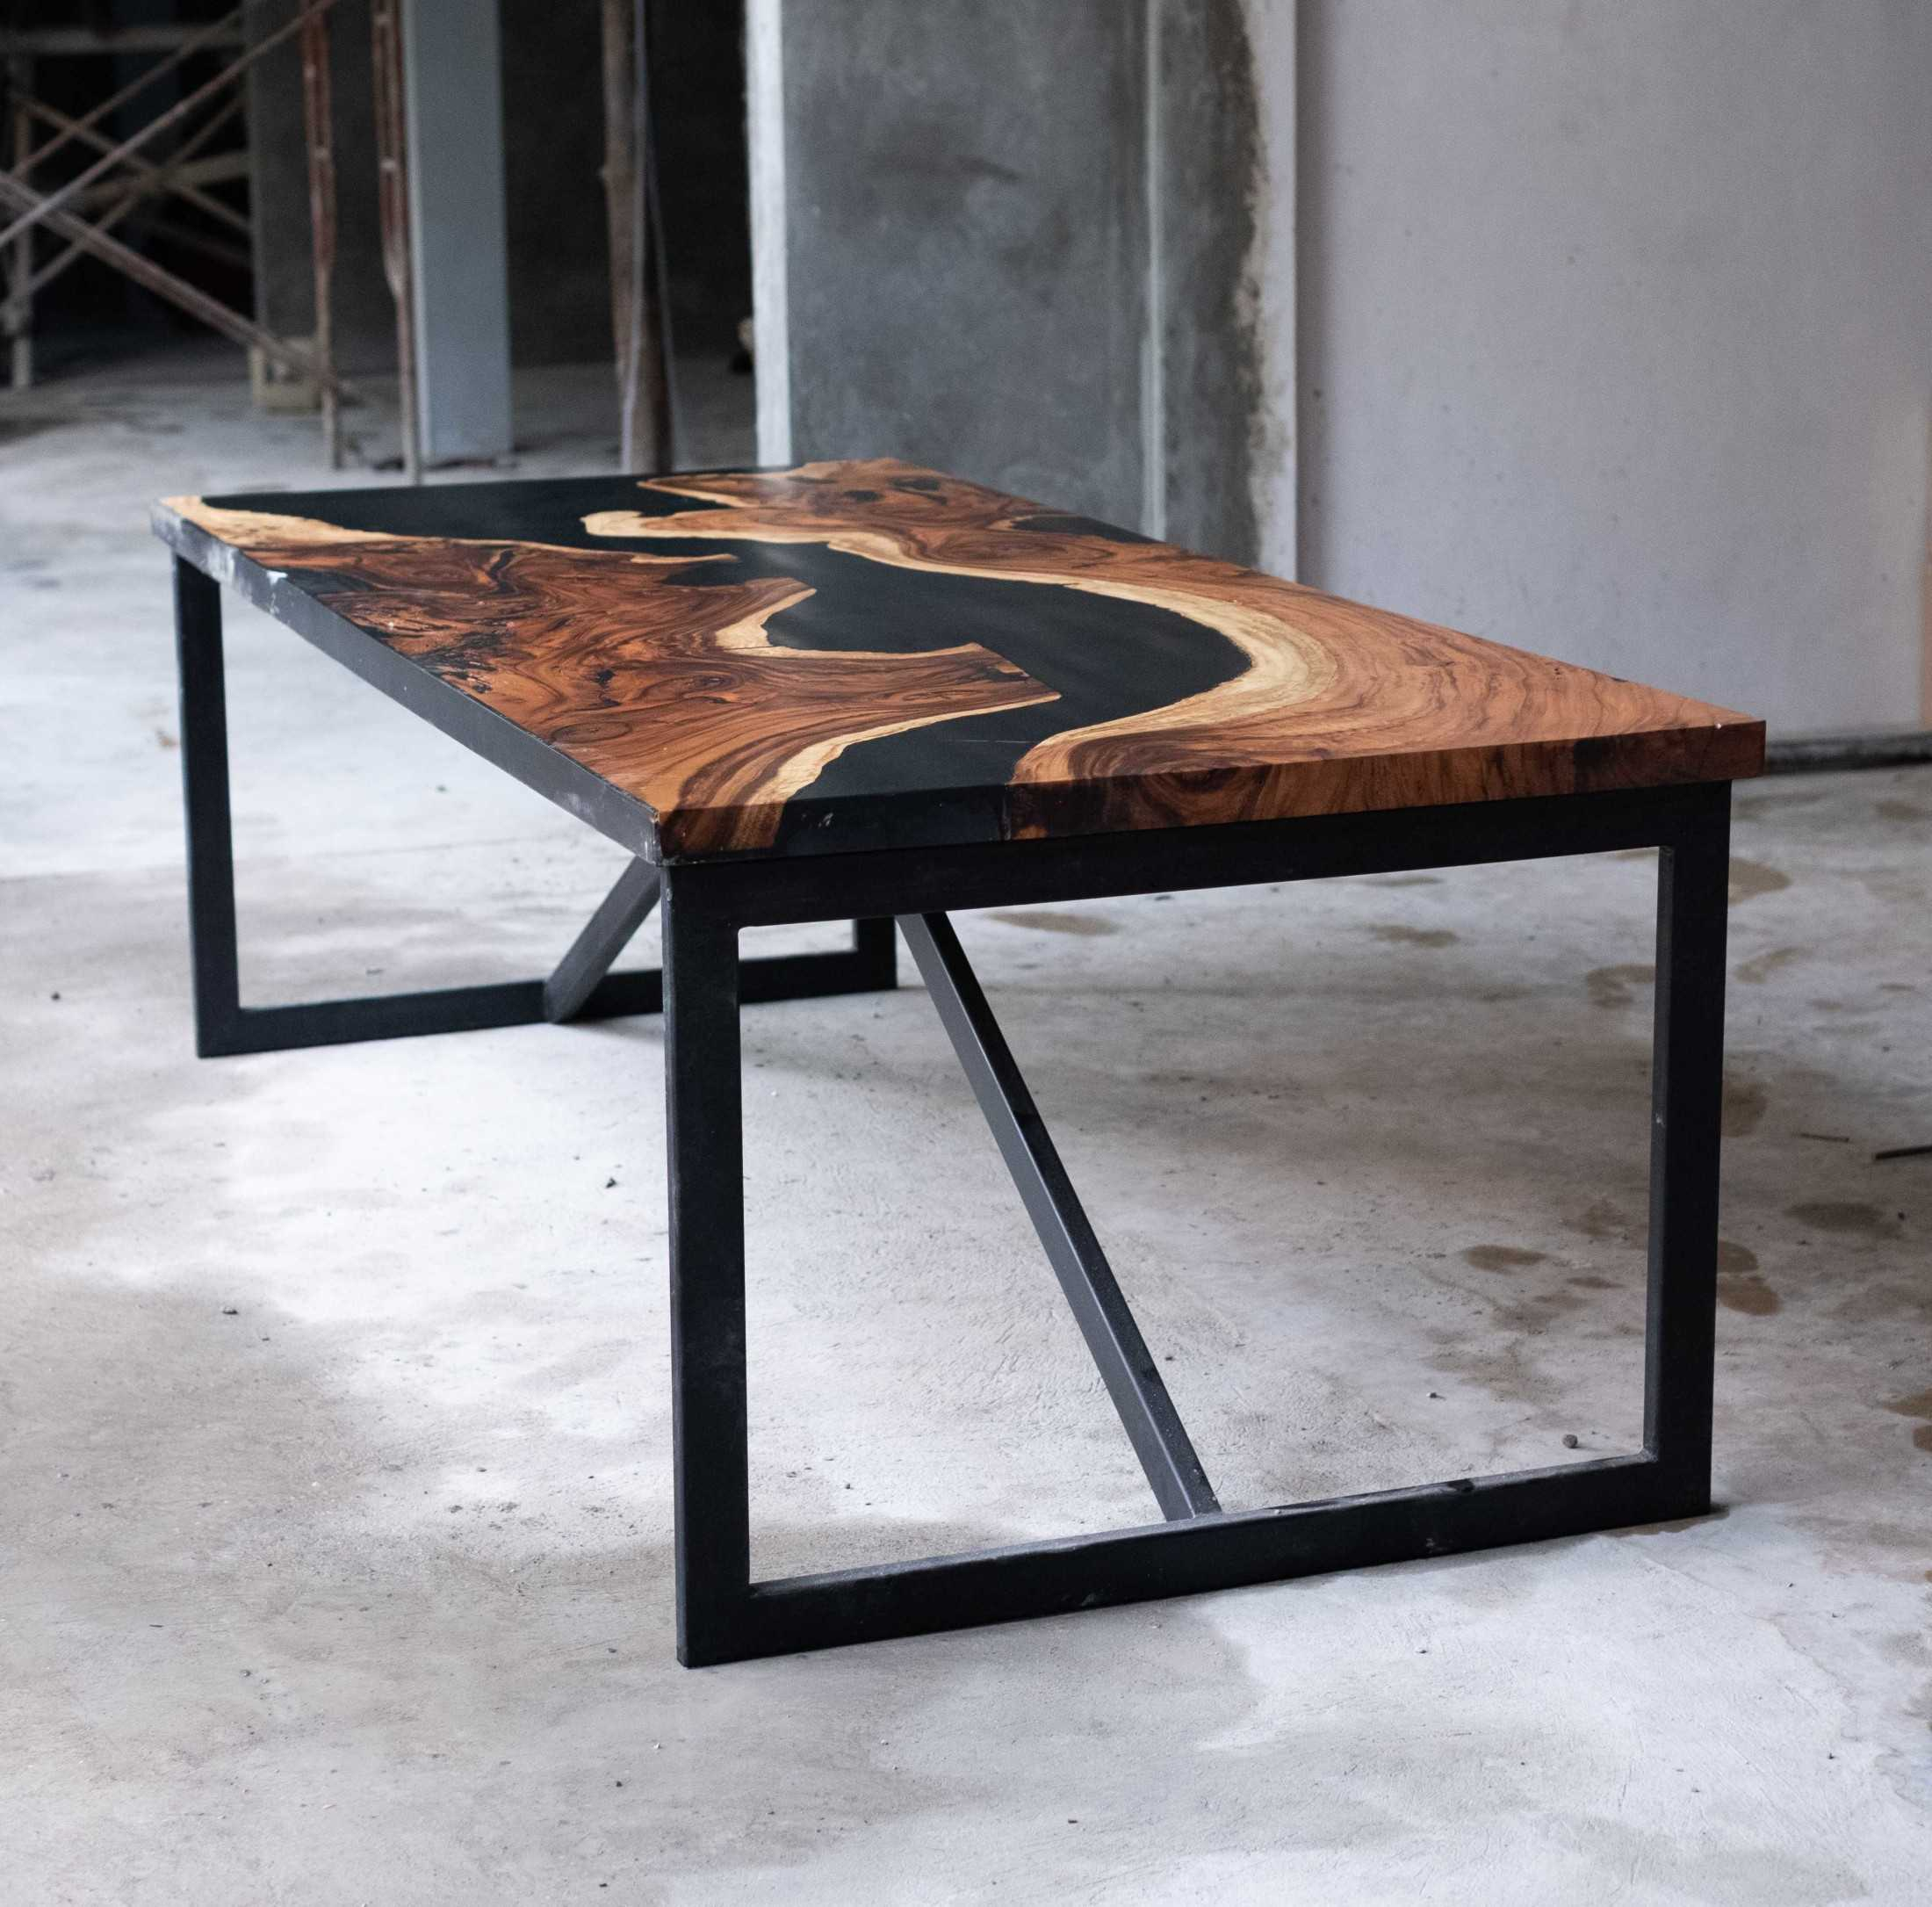 Rootslab Furniture & Craft Project Bekasi, Kota Bks, Jawa Barat, Indonesia Bekasi, Kota Bks, Jawa Barat, Indonesia Rootslab's Tamarind Wood (Trembesi) & Epoxy Resin River Table Industrial 113011